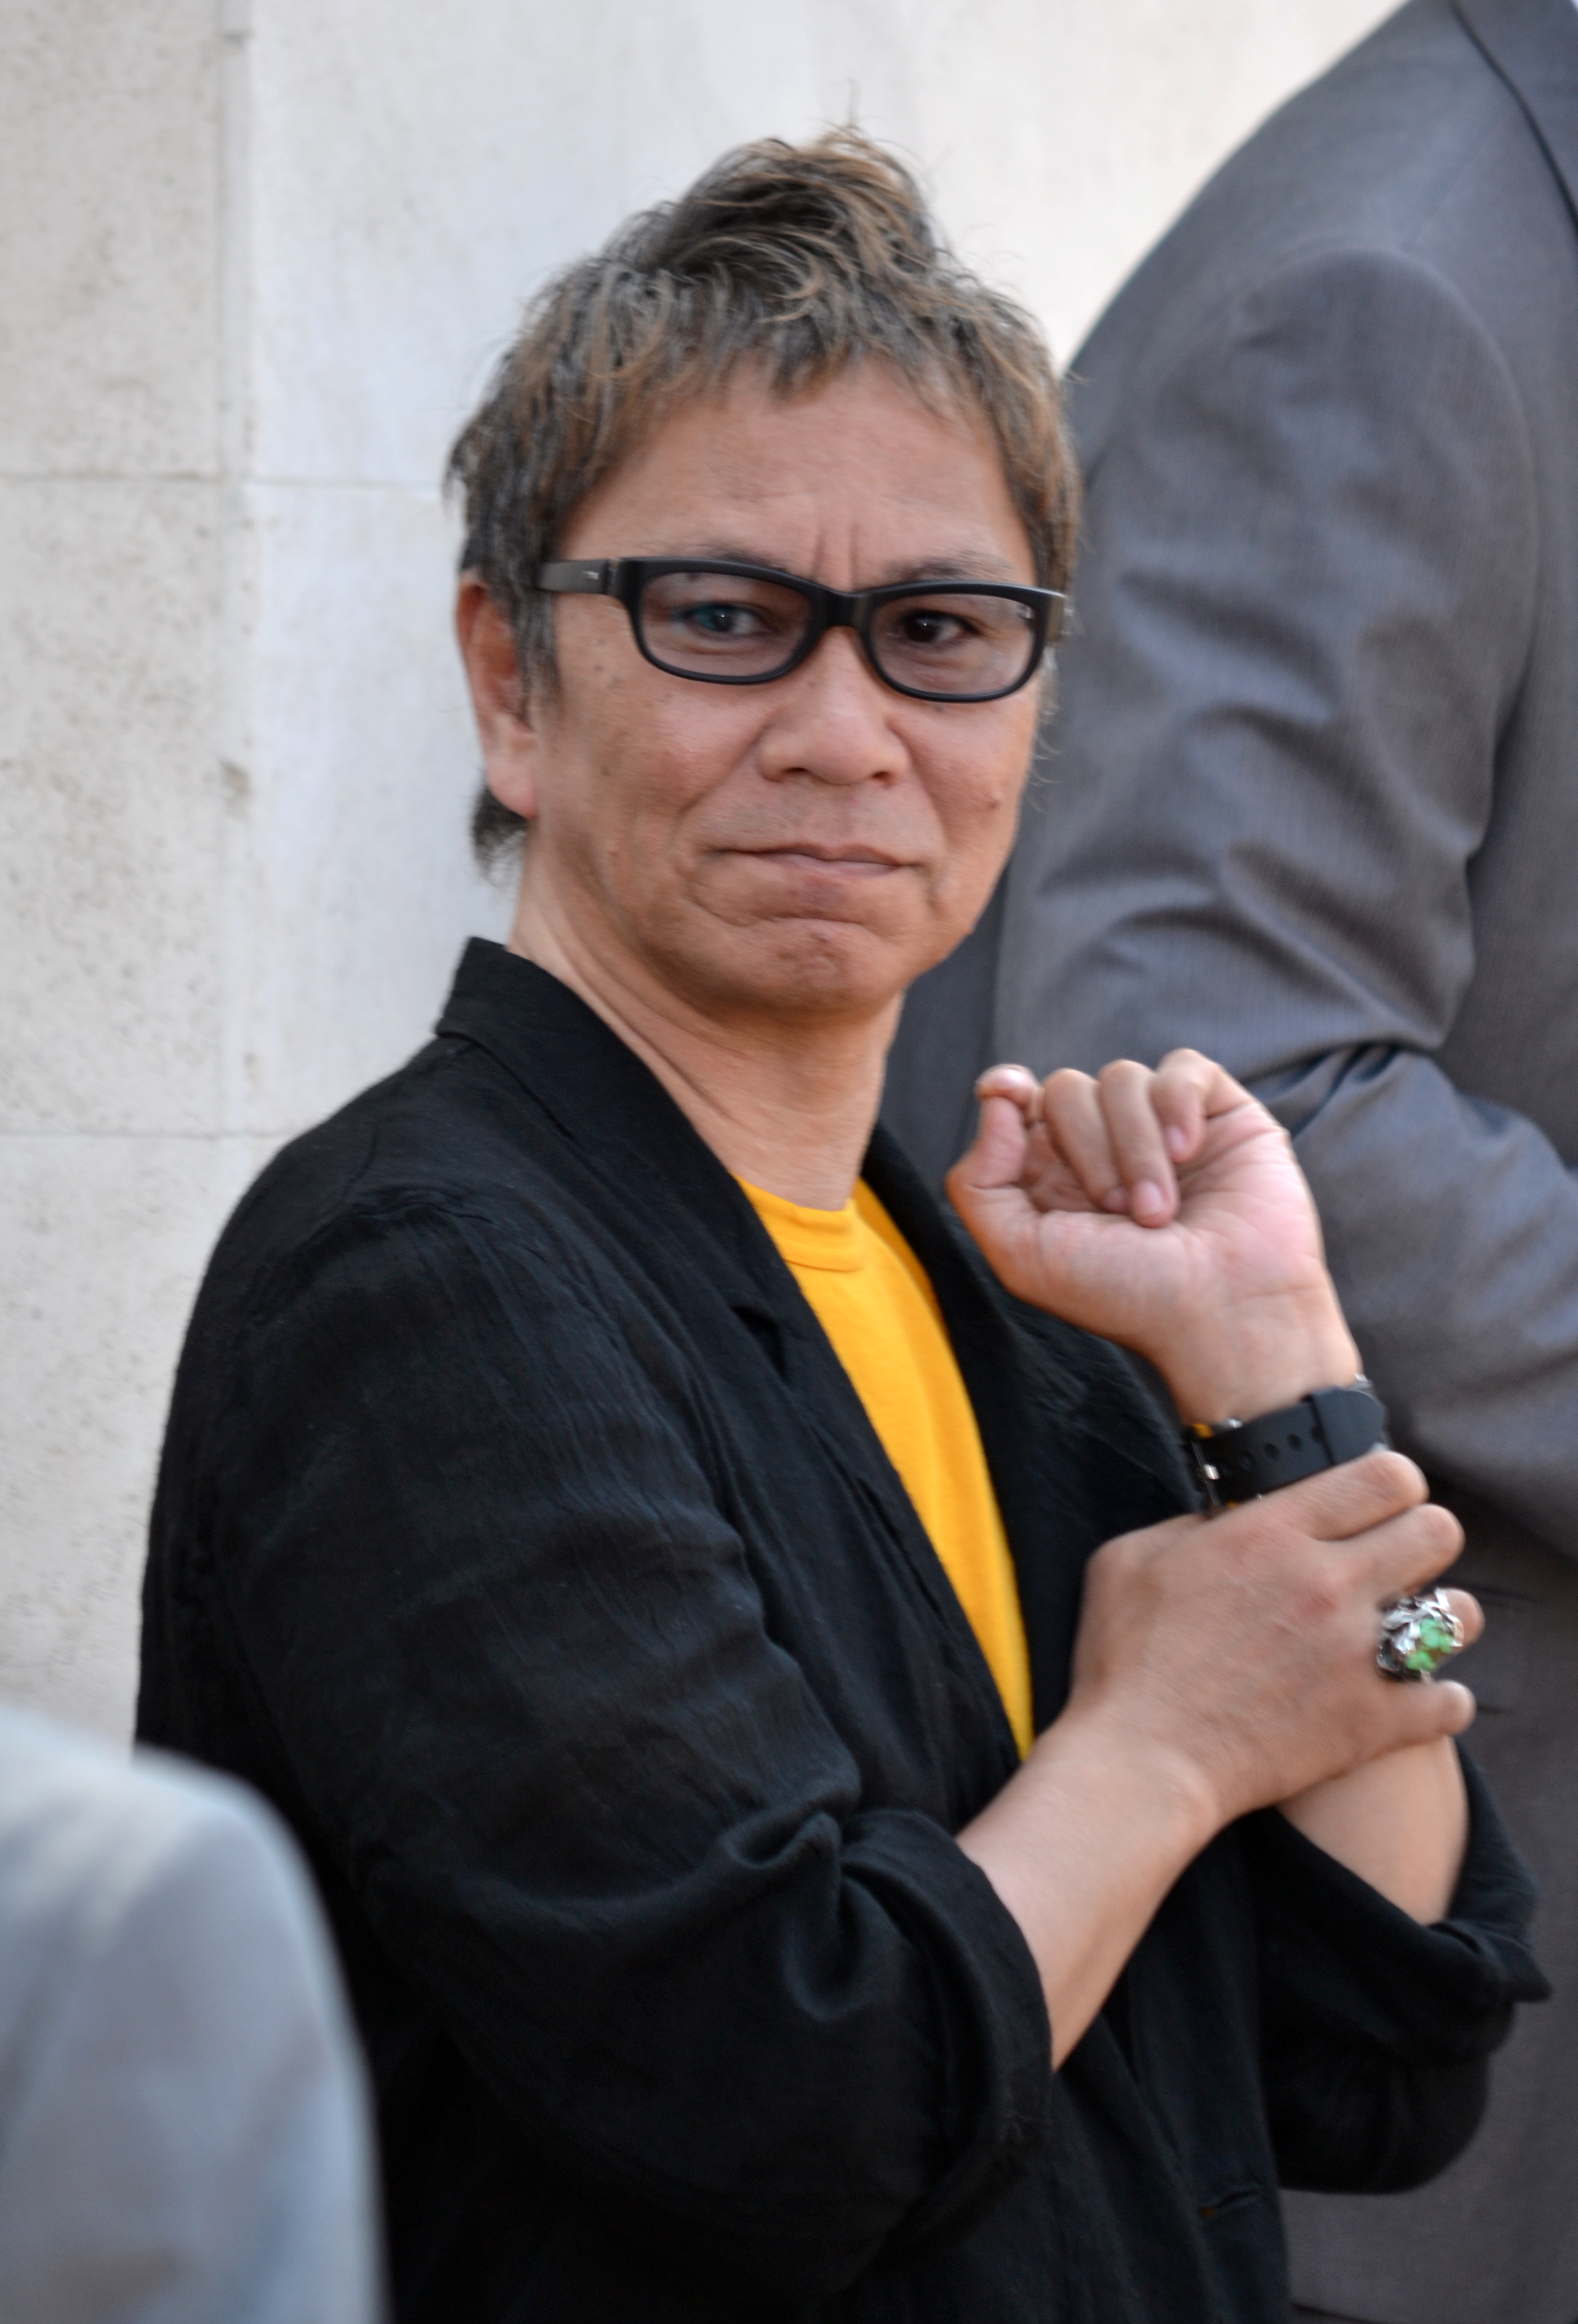 The 58-year old son of father (?) and mother(?) Takashi Miike in 2018 photo. Takashi Miike earned a  million dollar salary - leaving the net worth at 10 million in 2018